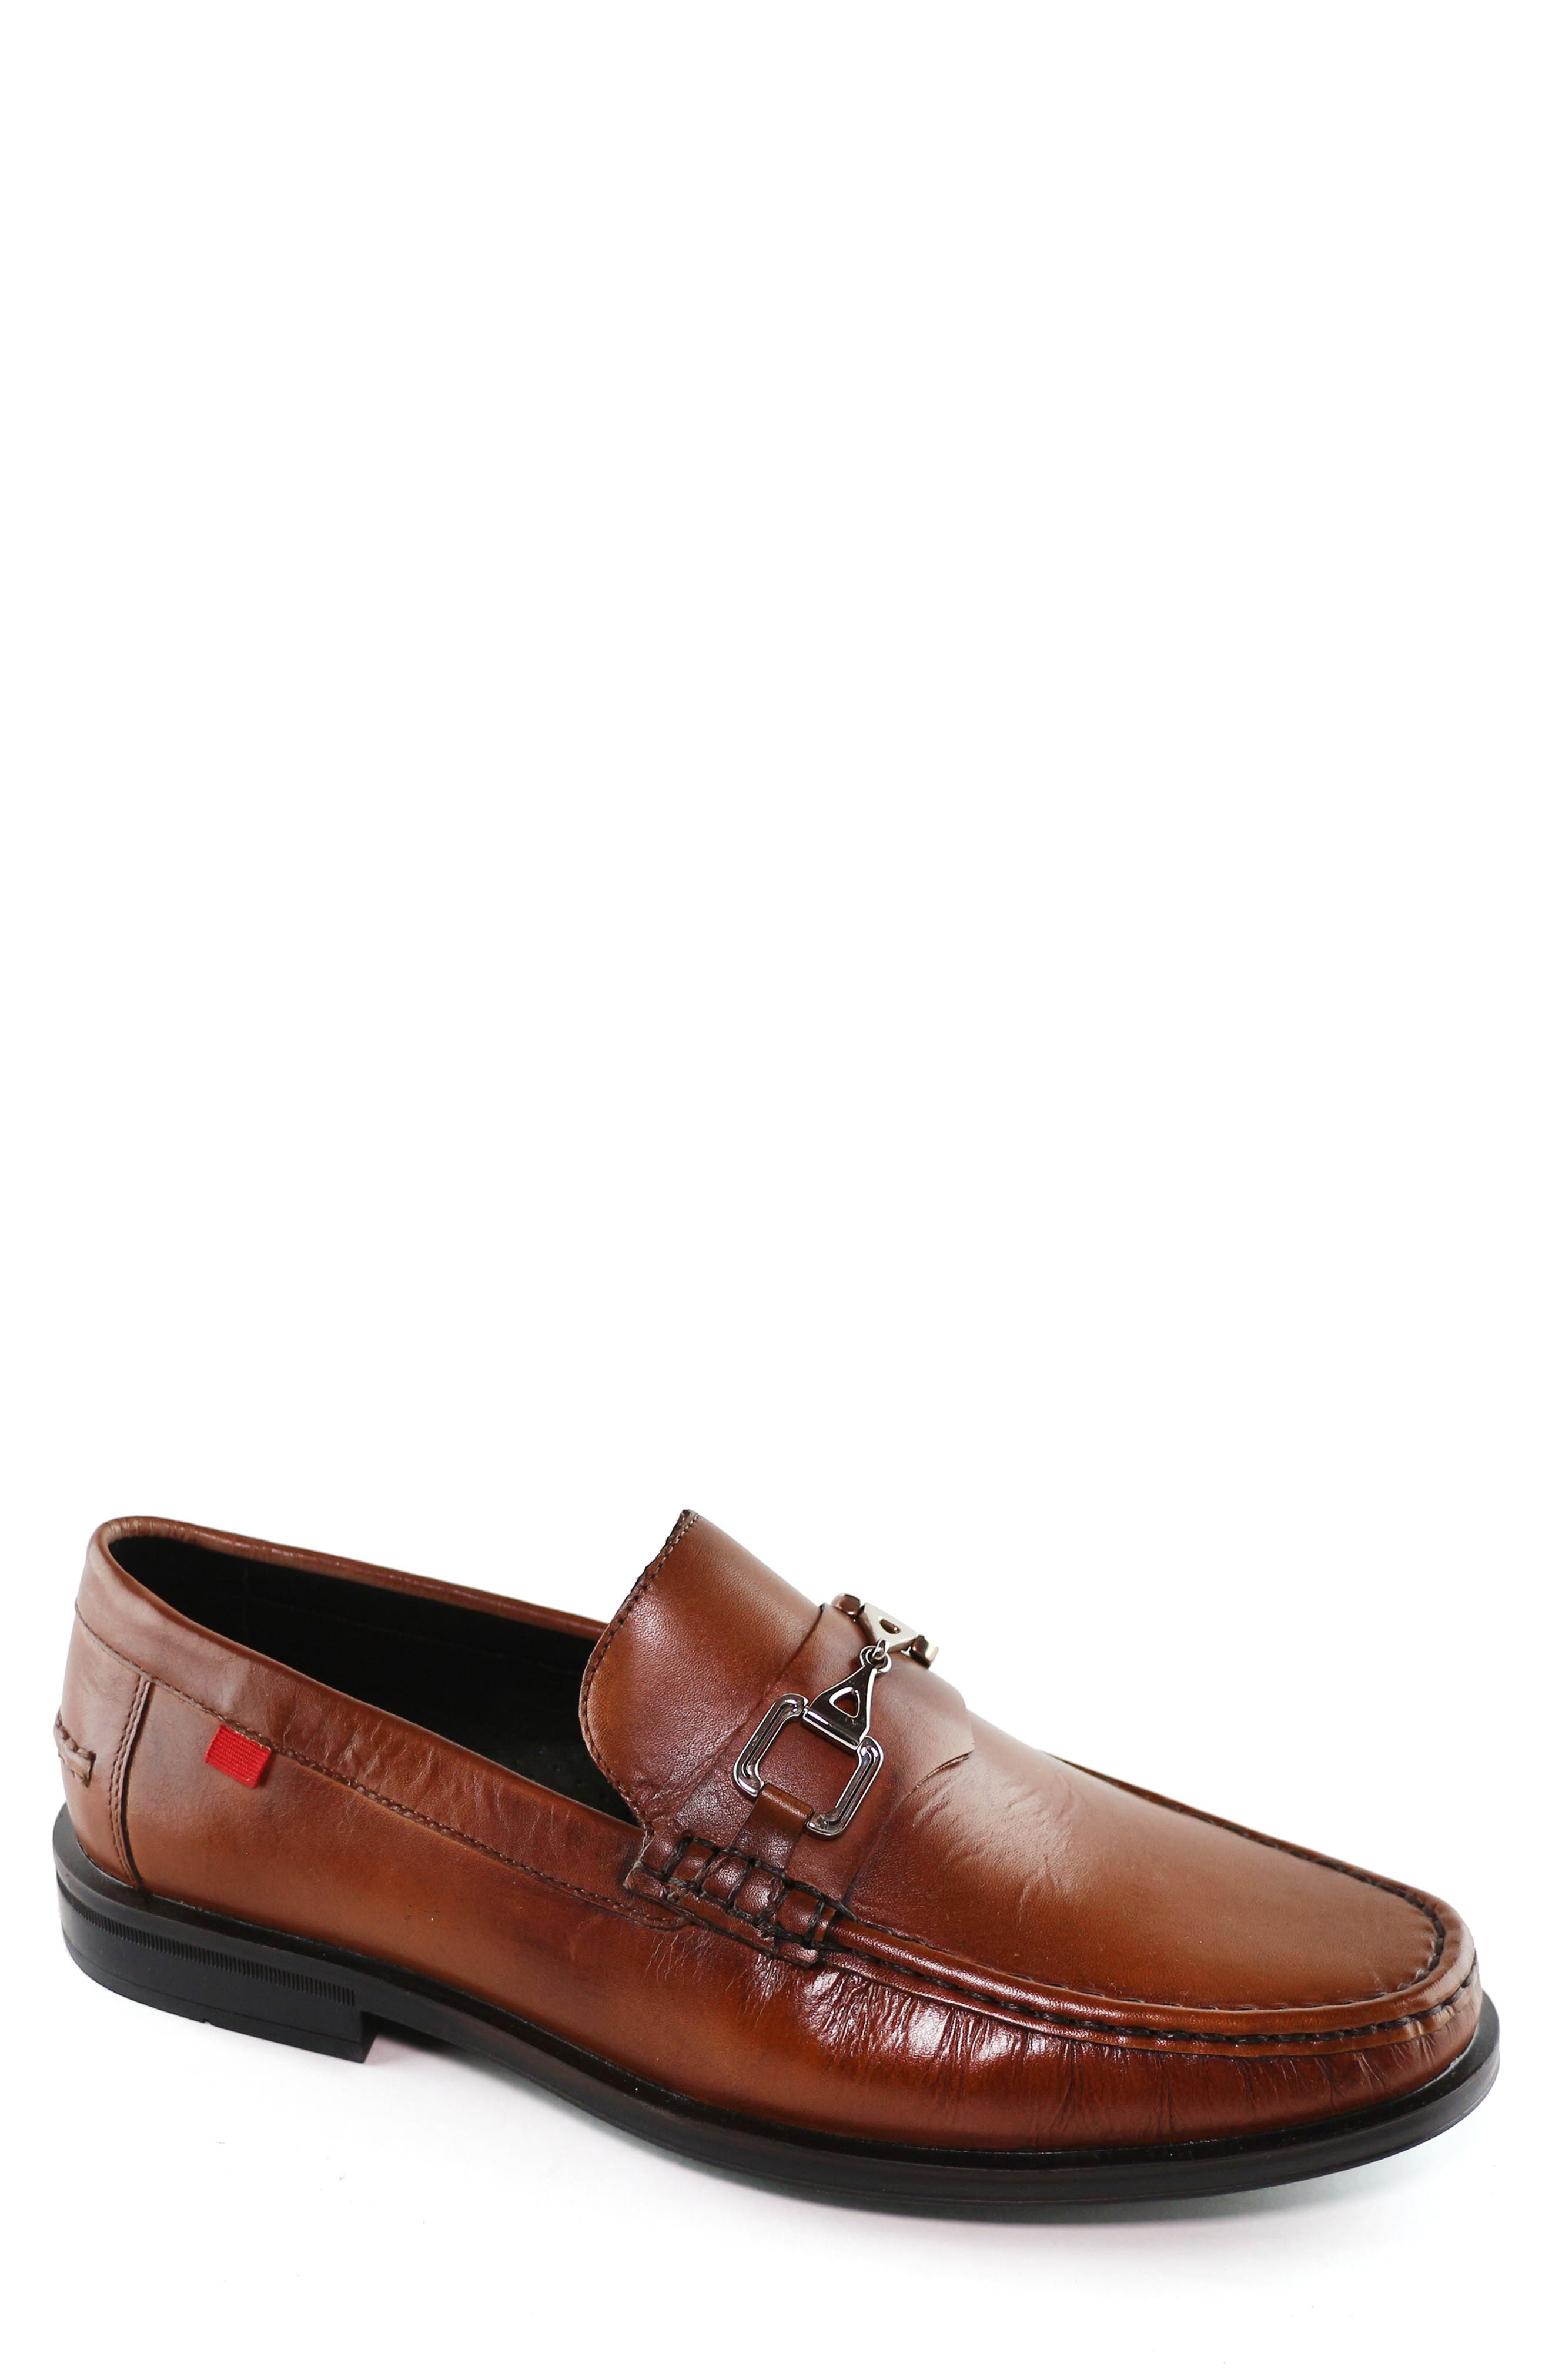 MARC JOSEPH NEW YORK, Astoria Bit Loafer, Main thumbnail 1, color, WHISKEY LEATHER